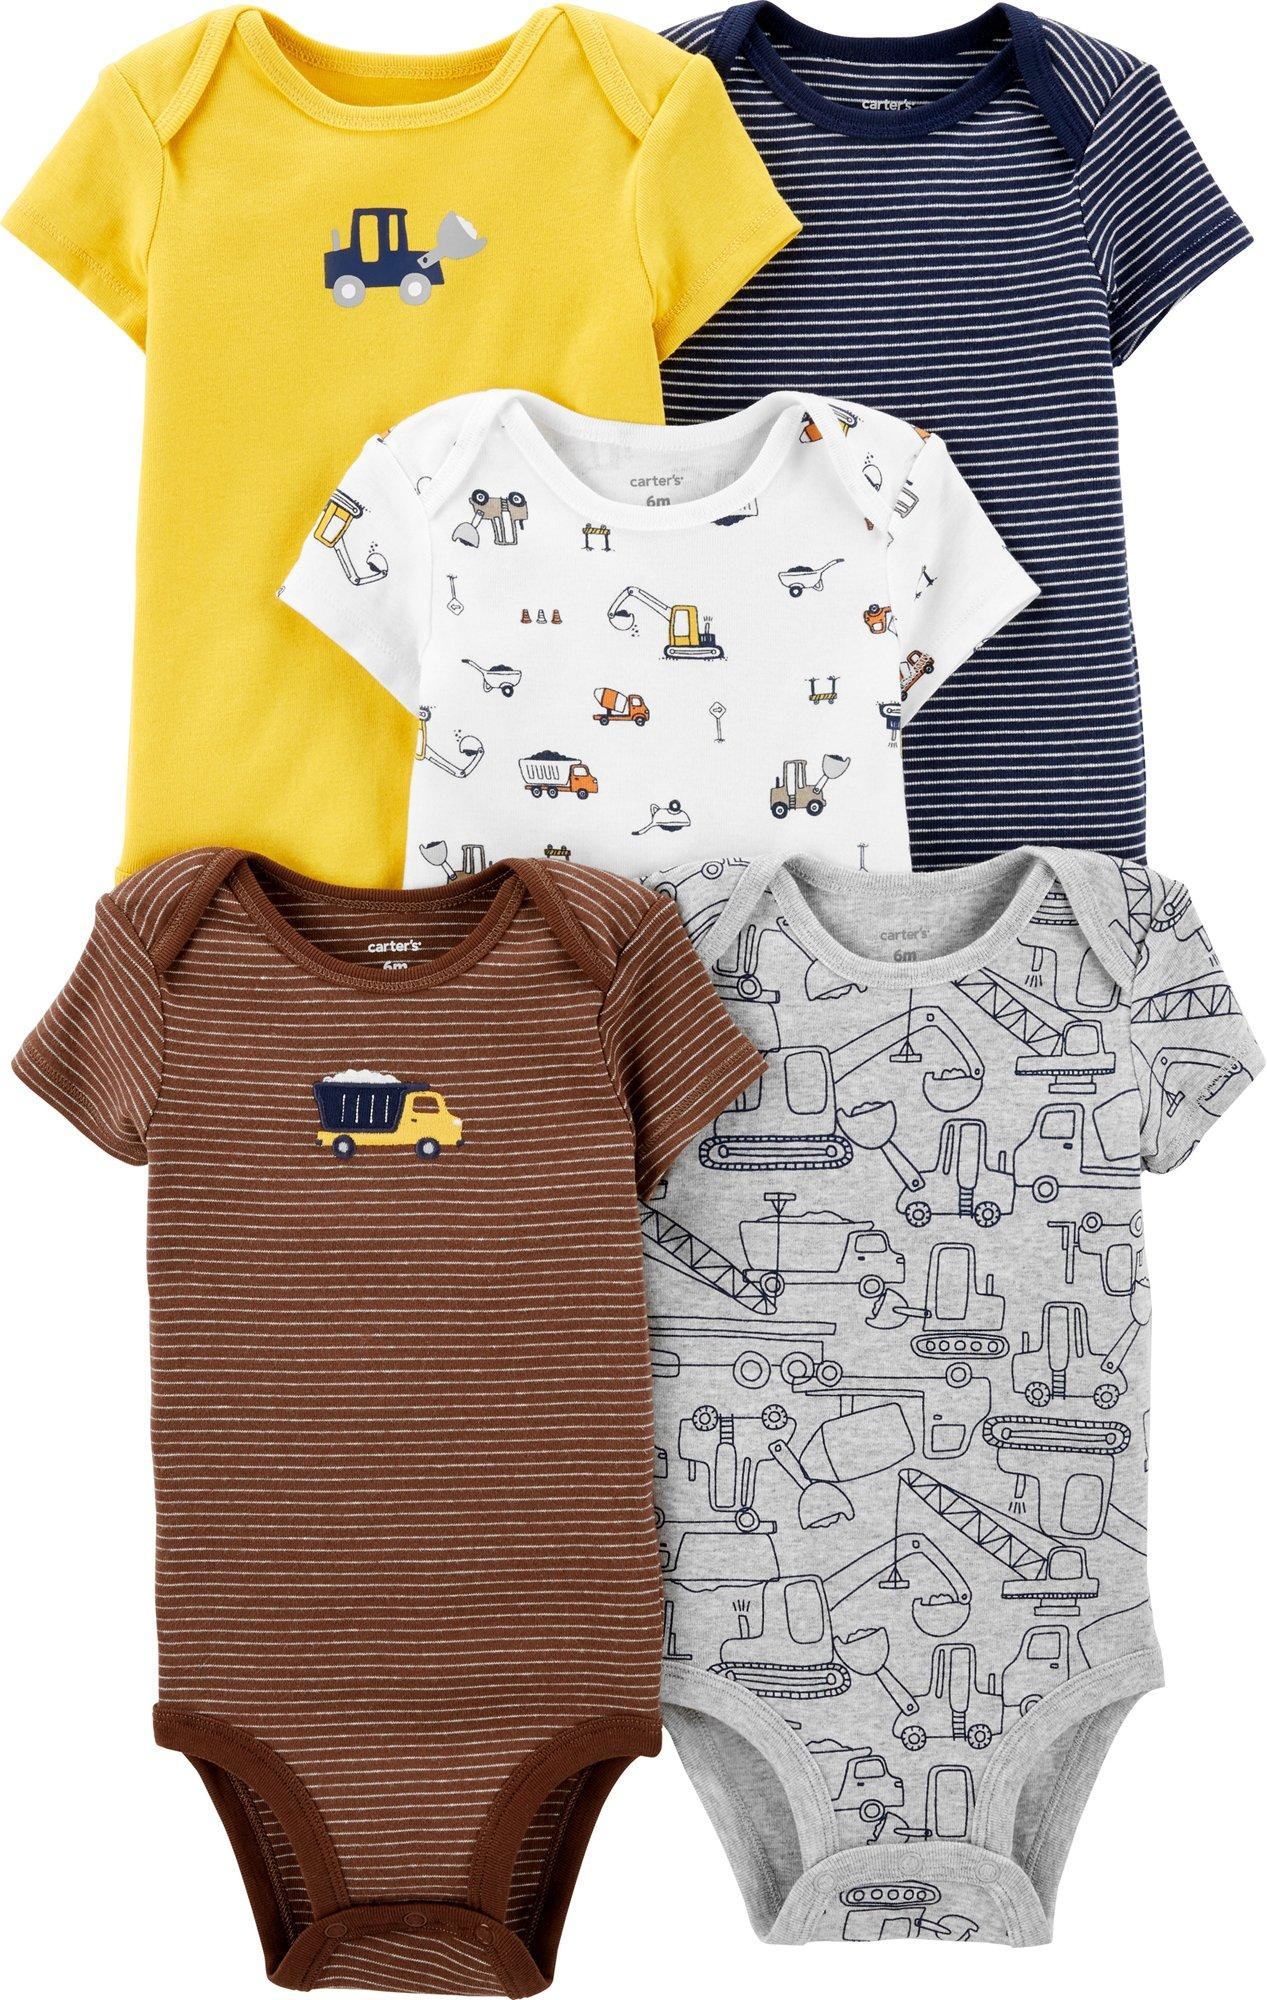 Assorted Carter/'s Baby Boys Size 6 Months Short Sleeve Cotton Shorts Romper